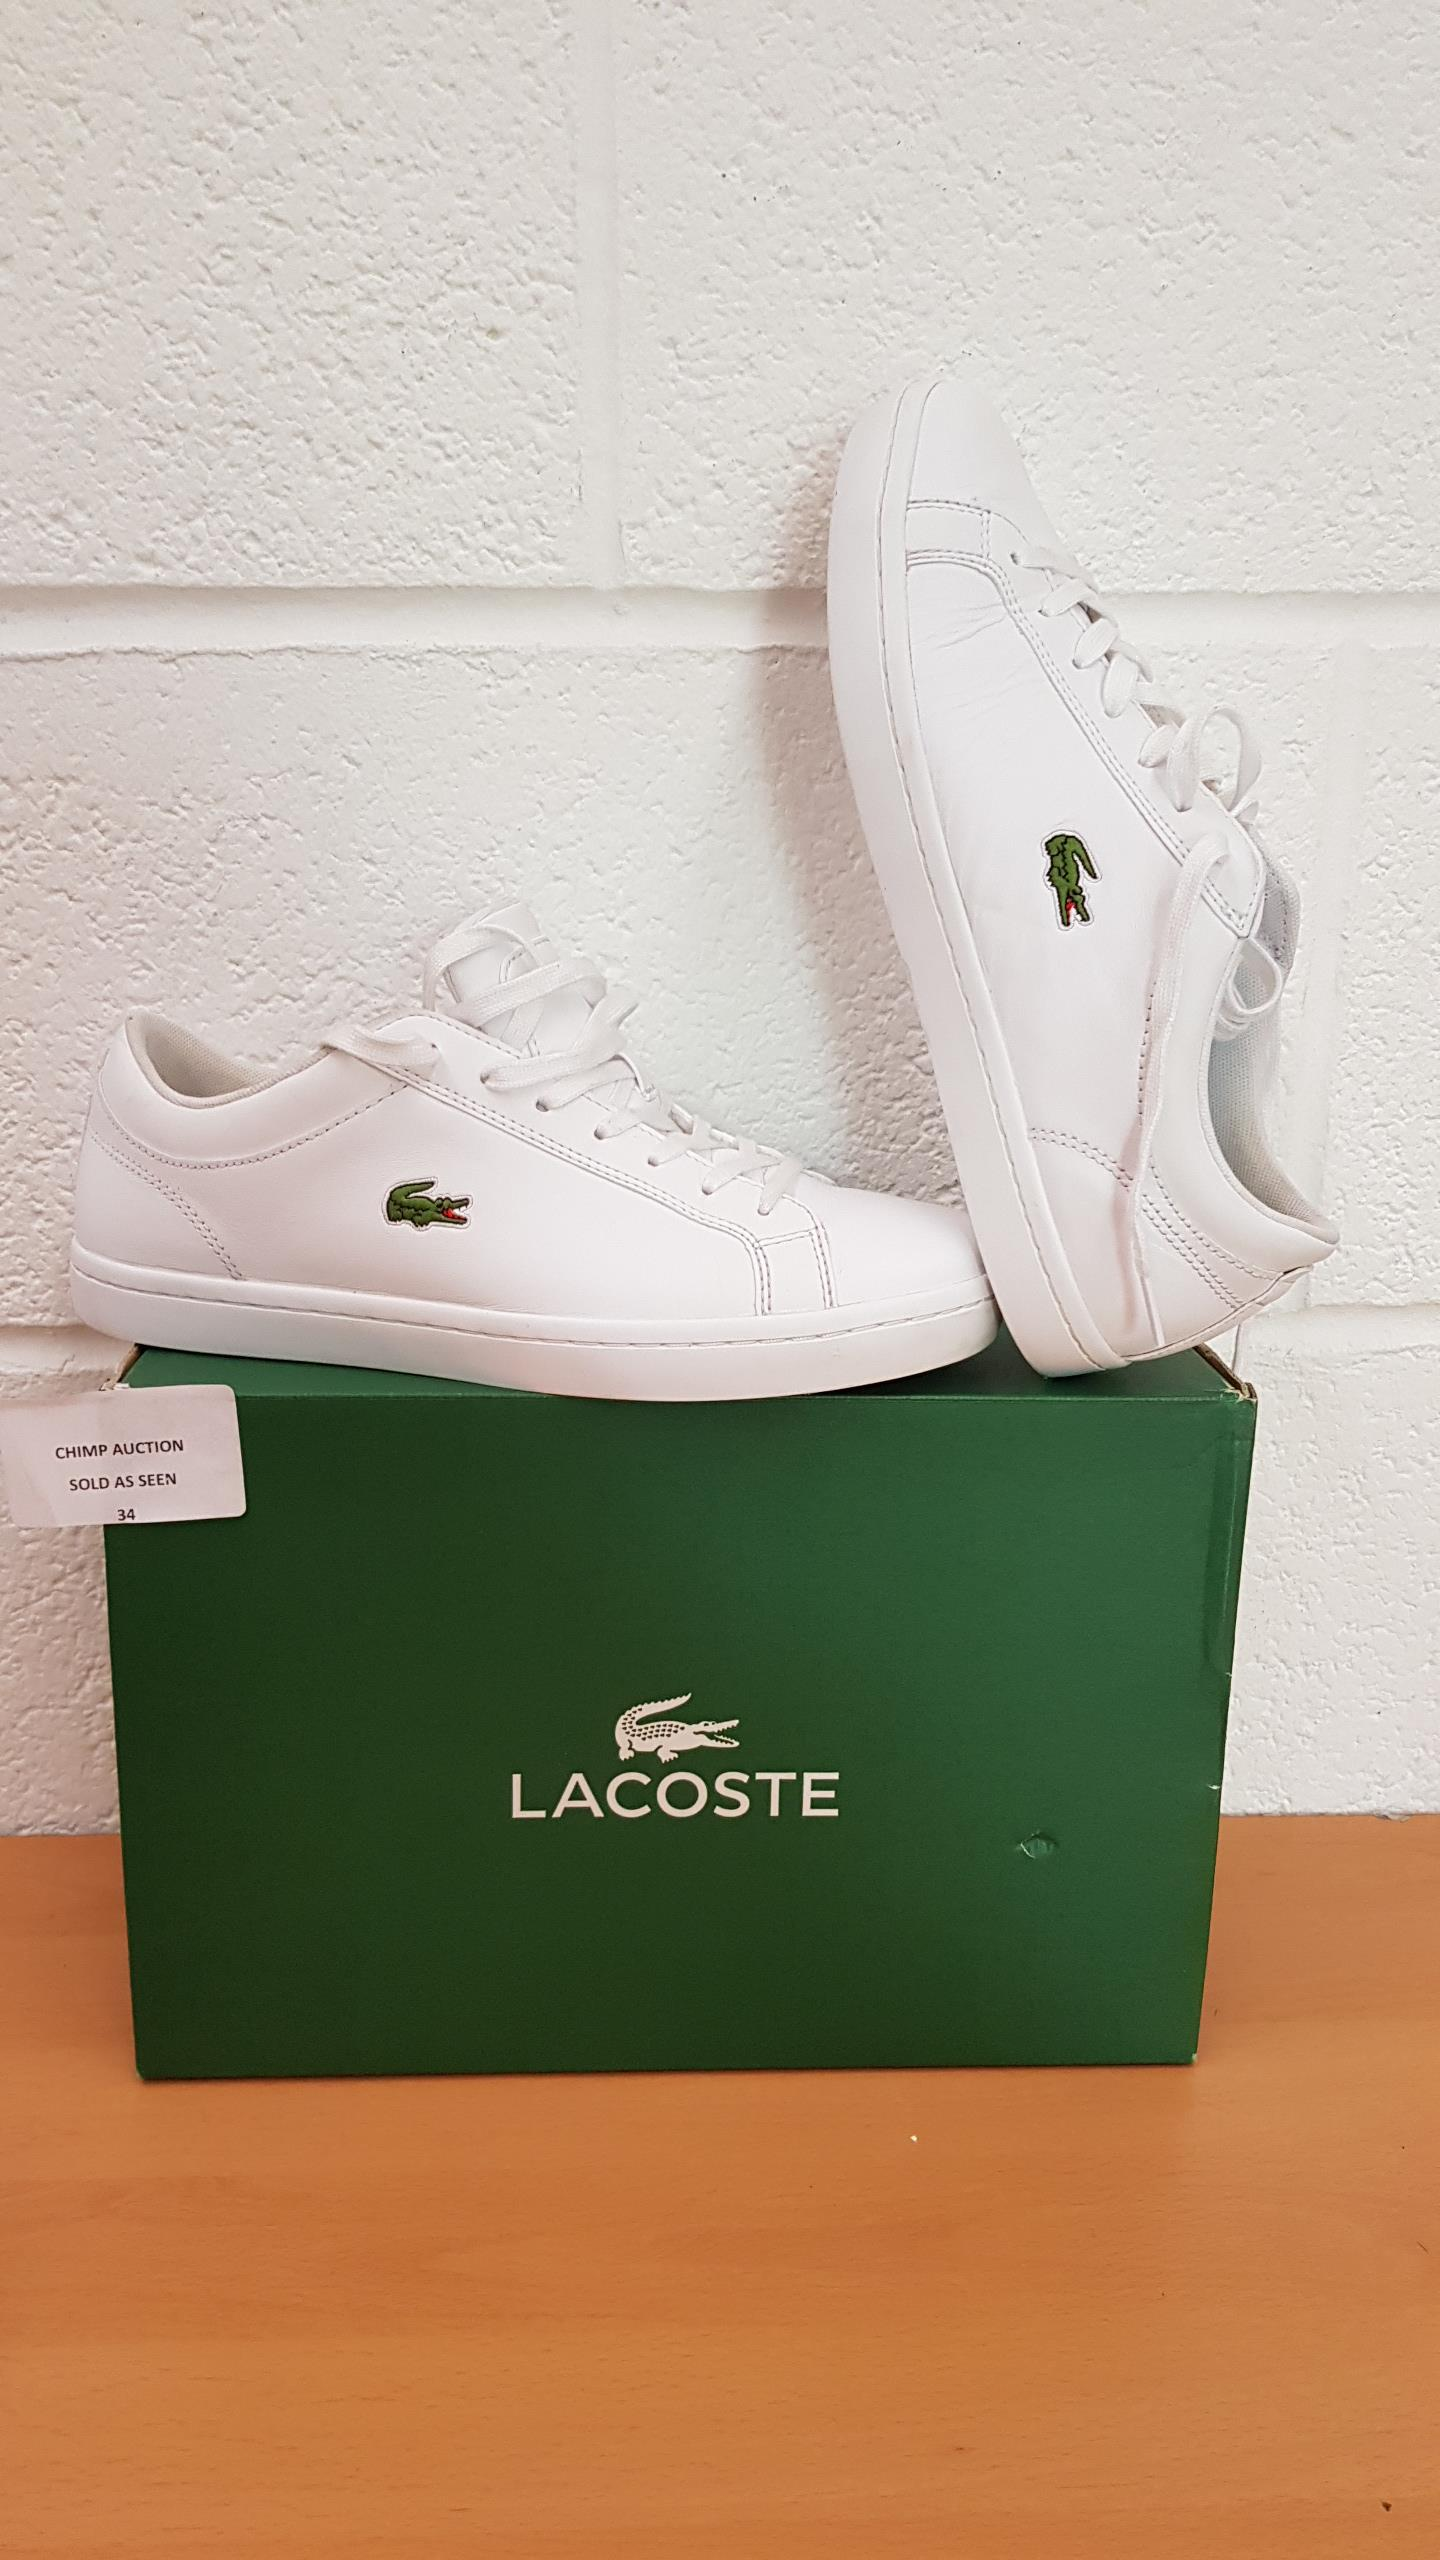 Lot 34 - Lacoste Women's Straightset Bl 1 SPW Low shoes UK SIZE 7.5 RRP £119.99